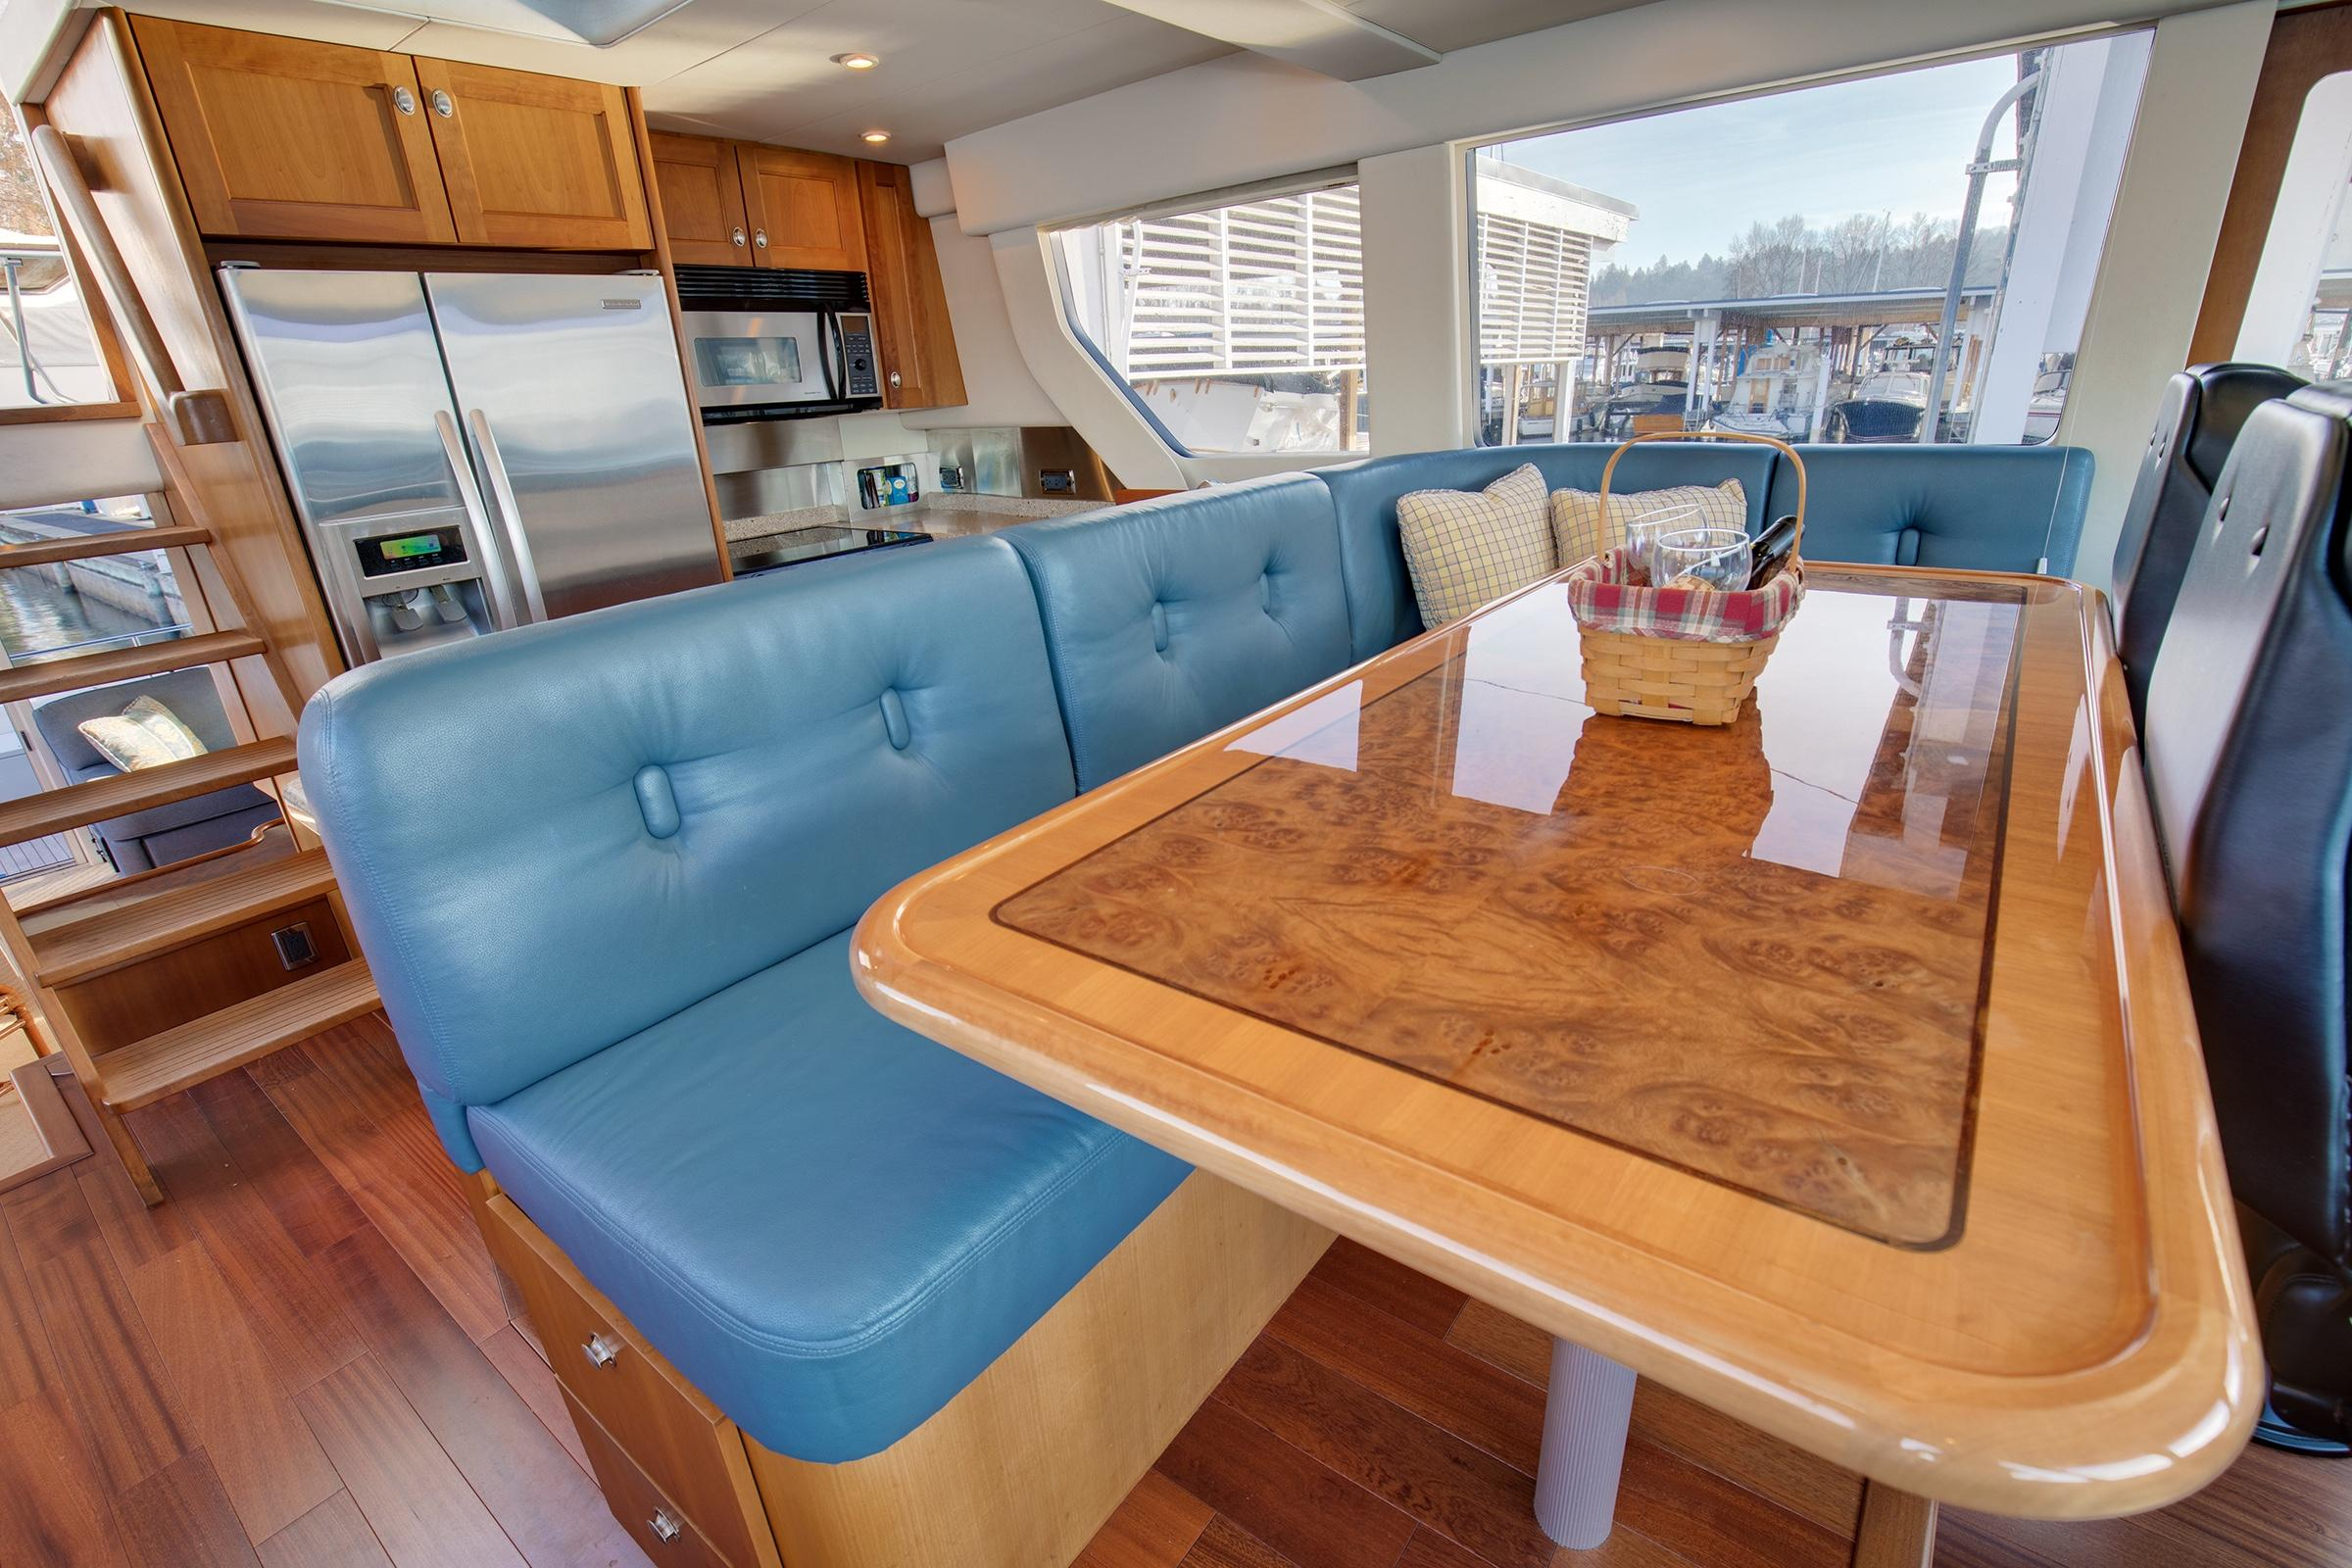 2003 Pacific Mariner Motor Yacht Yacht for Sale in Seattle, WA ...